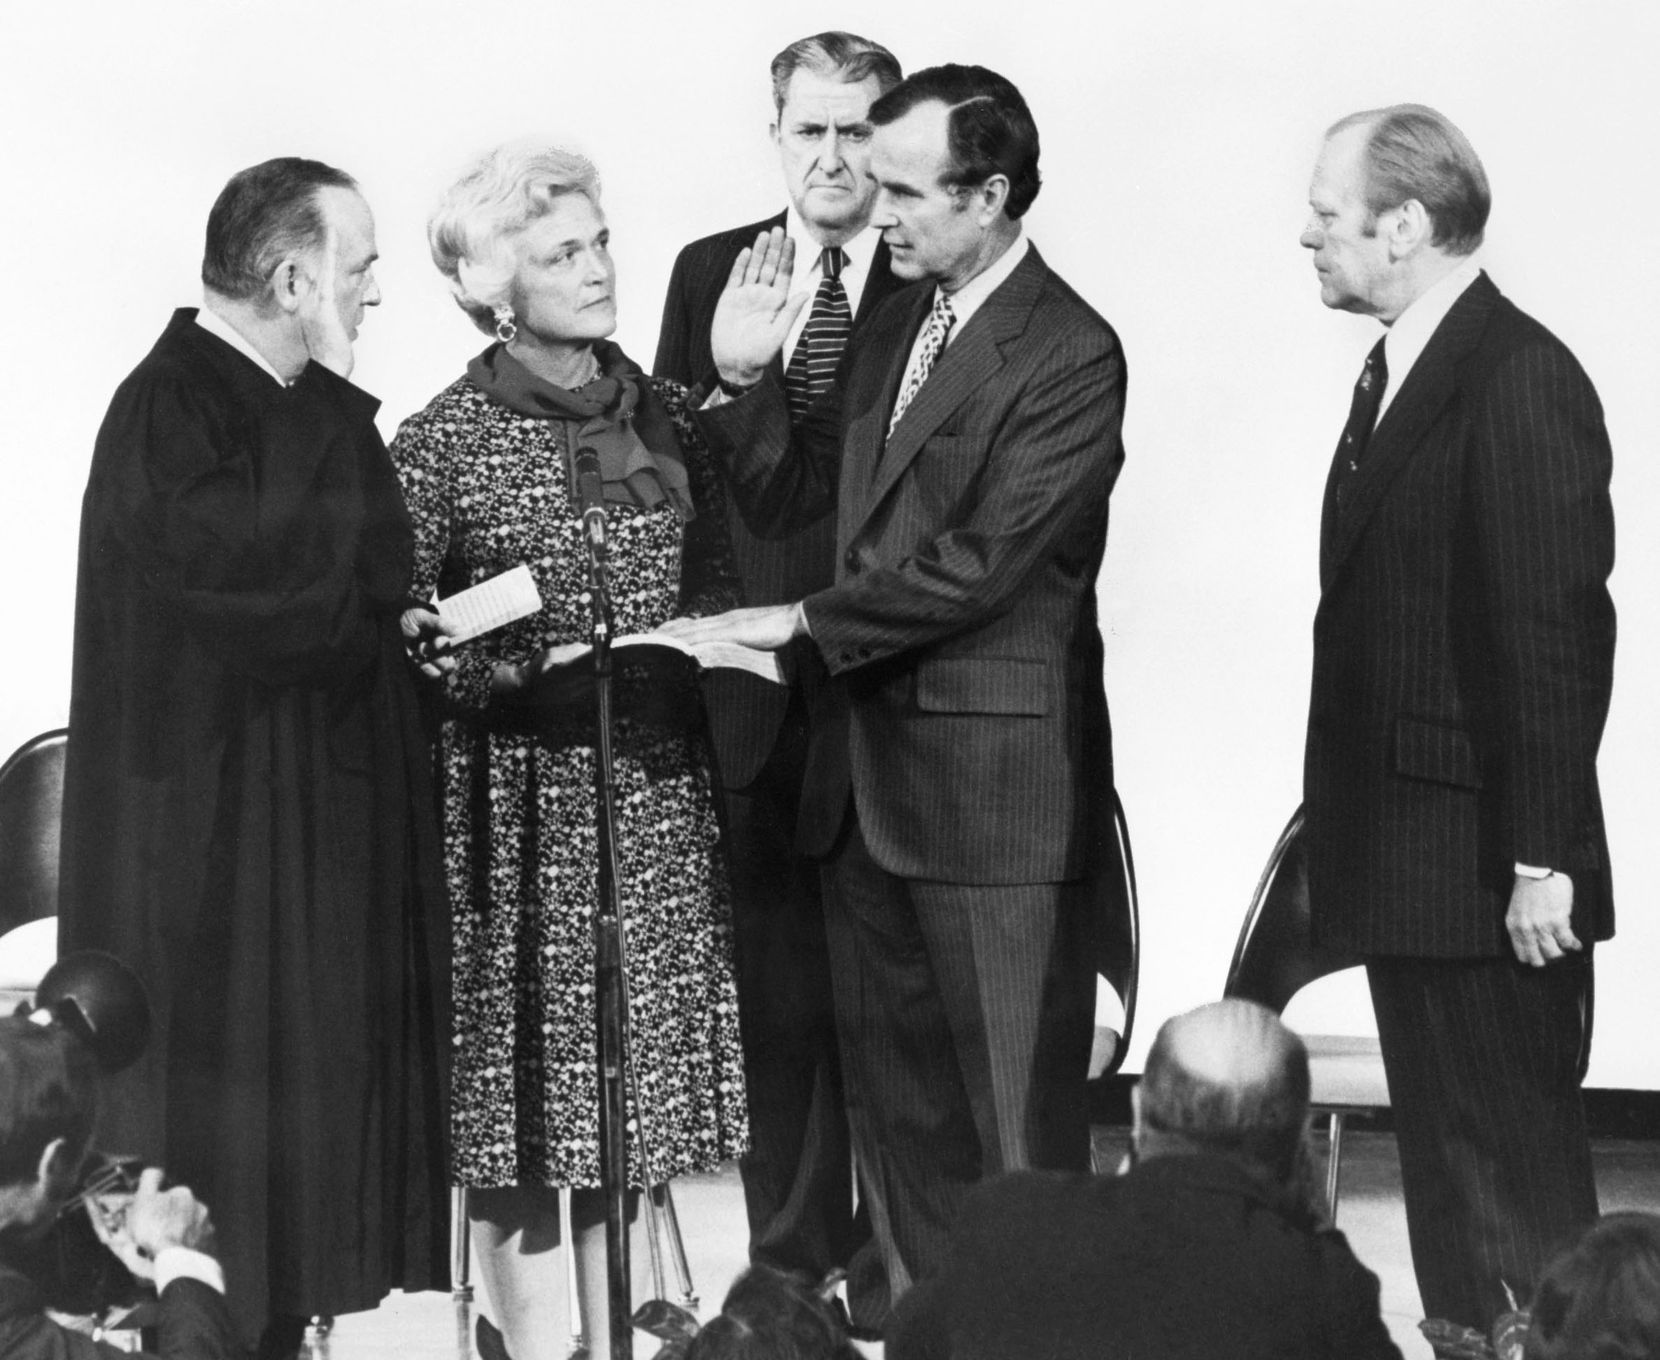 1976: George H.W. Bush (second from right) is sworn in as CIA diretor by Associate Supreme Court Justice Potter Stewart in Washington, D.C., as his wife, Barbara Bush, CIA's vice director Vernon Walters (background) and President Gerald Ford watch.